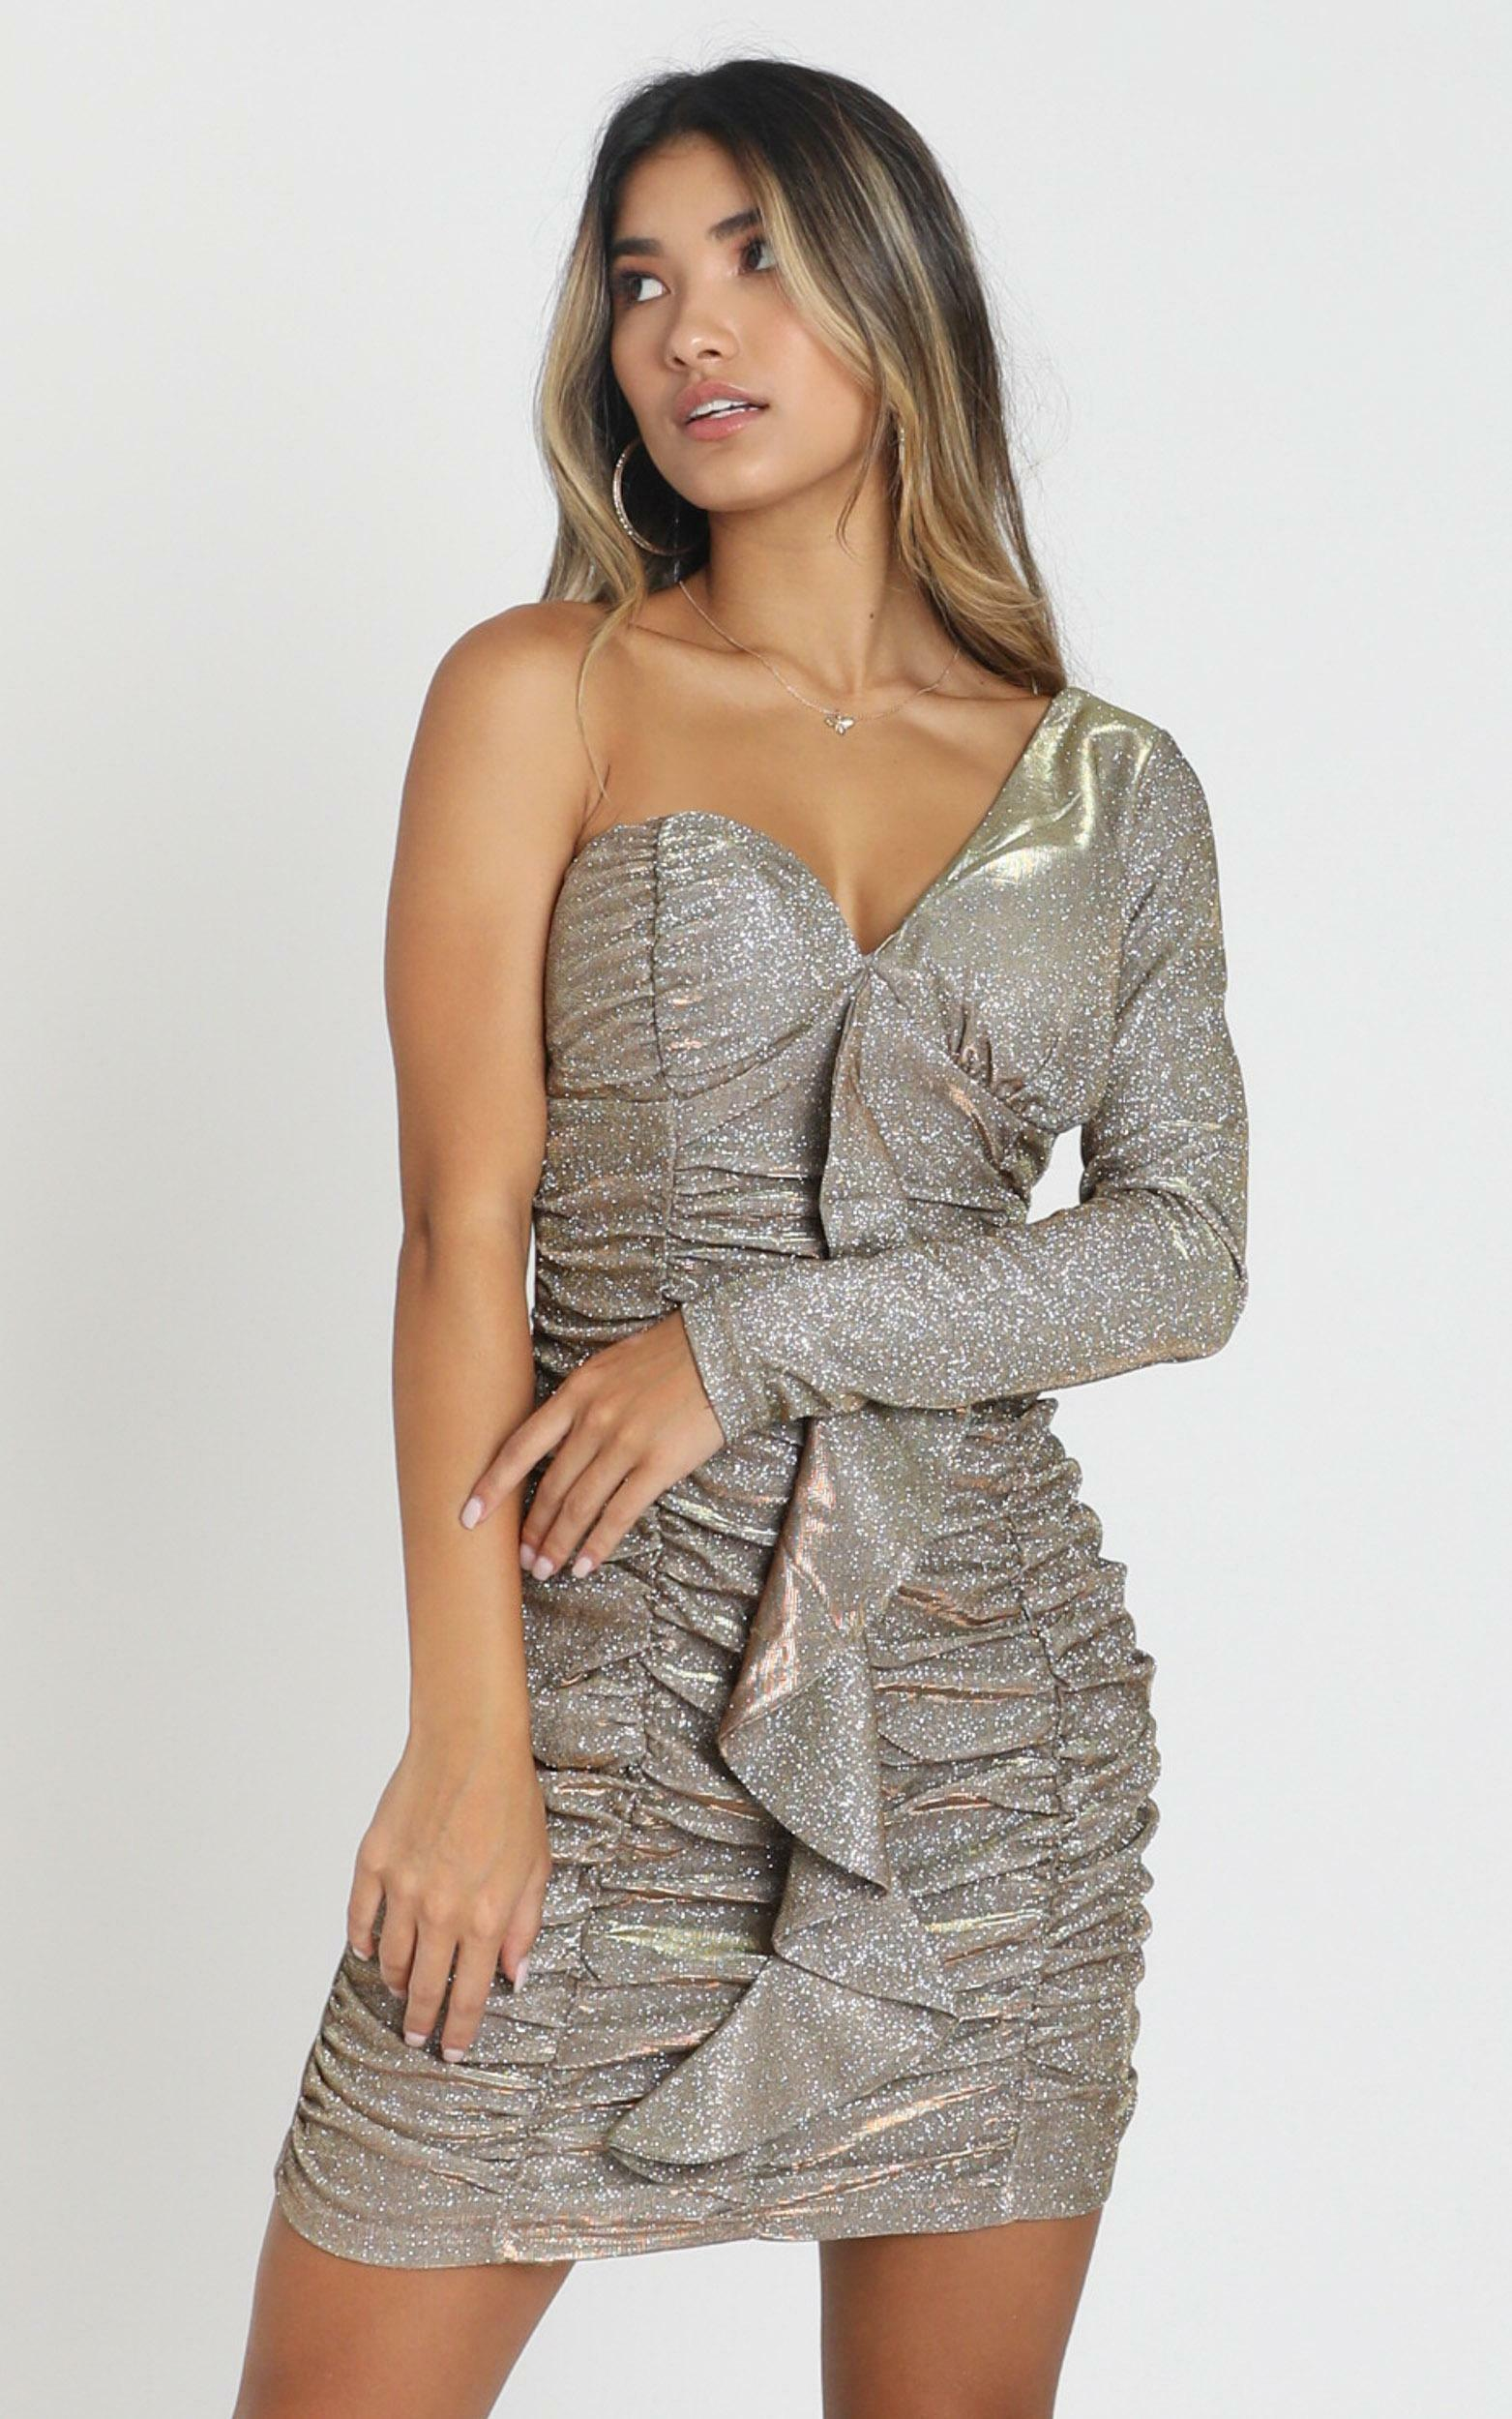 Saskia Dress in gold glitter - 8 (S), Gold, hi-res image number null